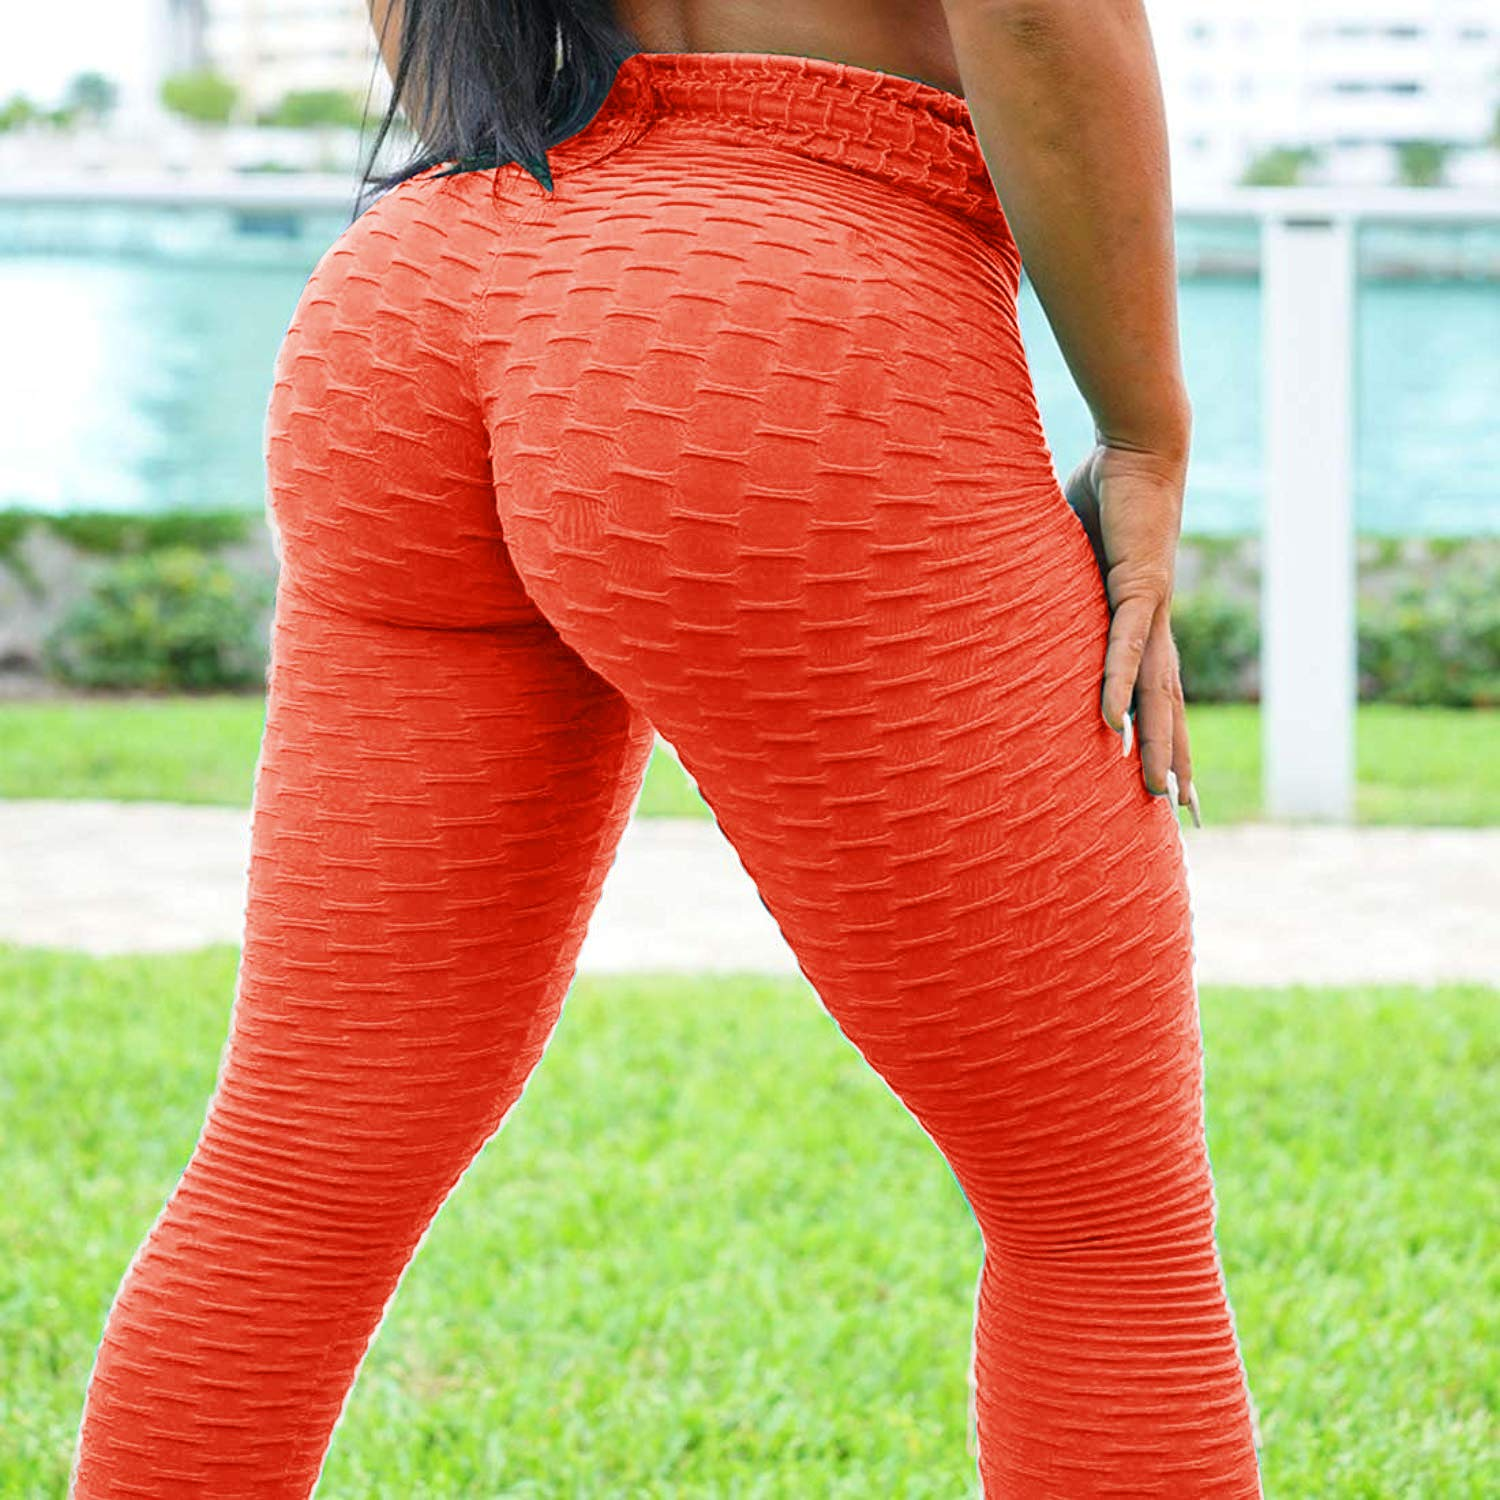 Twotwowin Womes High Waist Yoga Pants Ruched Butt Lifting Tummy Slimming Leggings Workout Tights